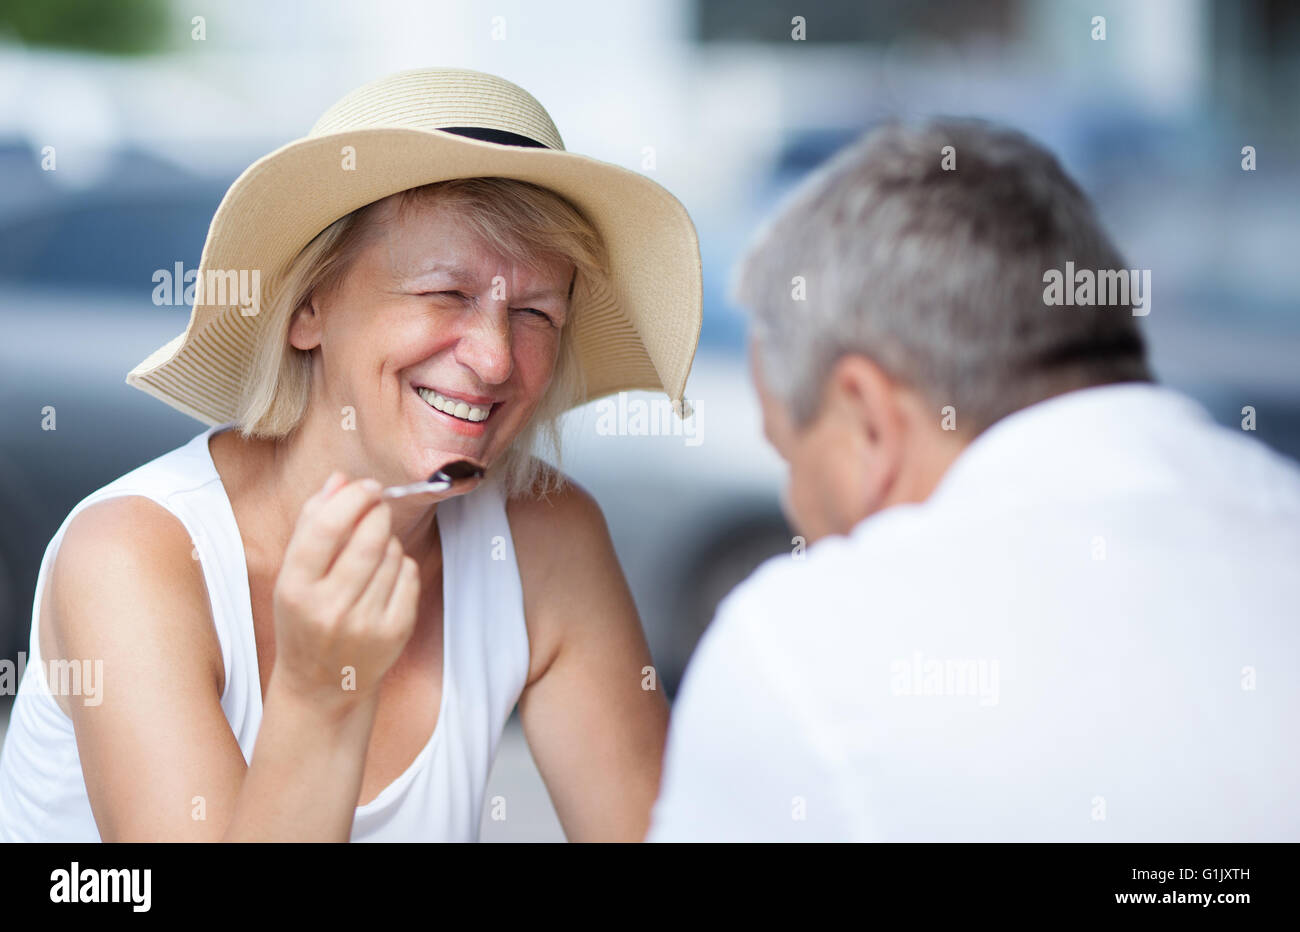 Smiling happy woman relaxing with her husband Photo Stock